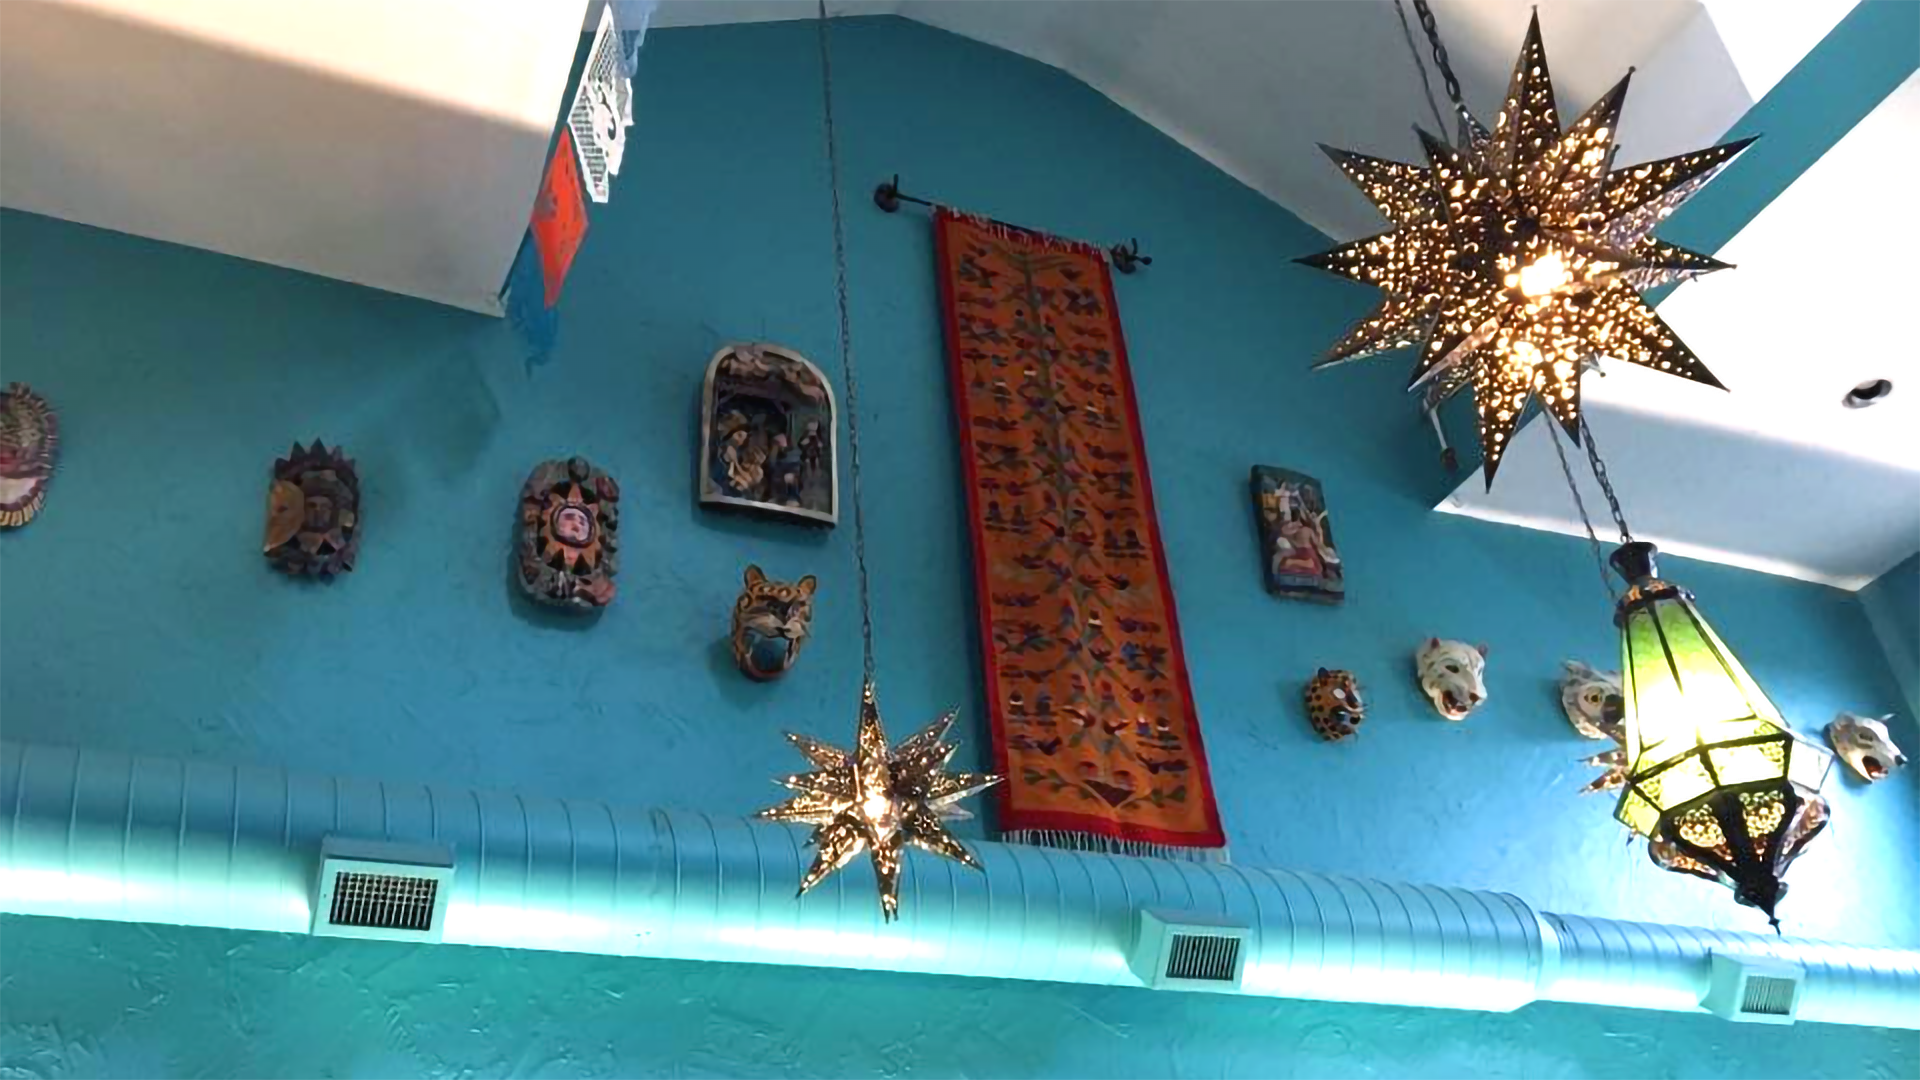 Decoration from La Palapa, Mexican Restaurant in Pittsburgh Source: La Palapa on Facebook